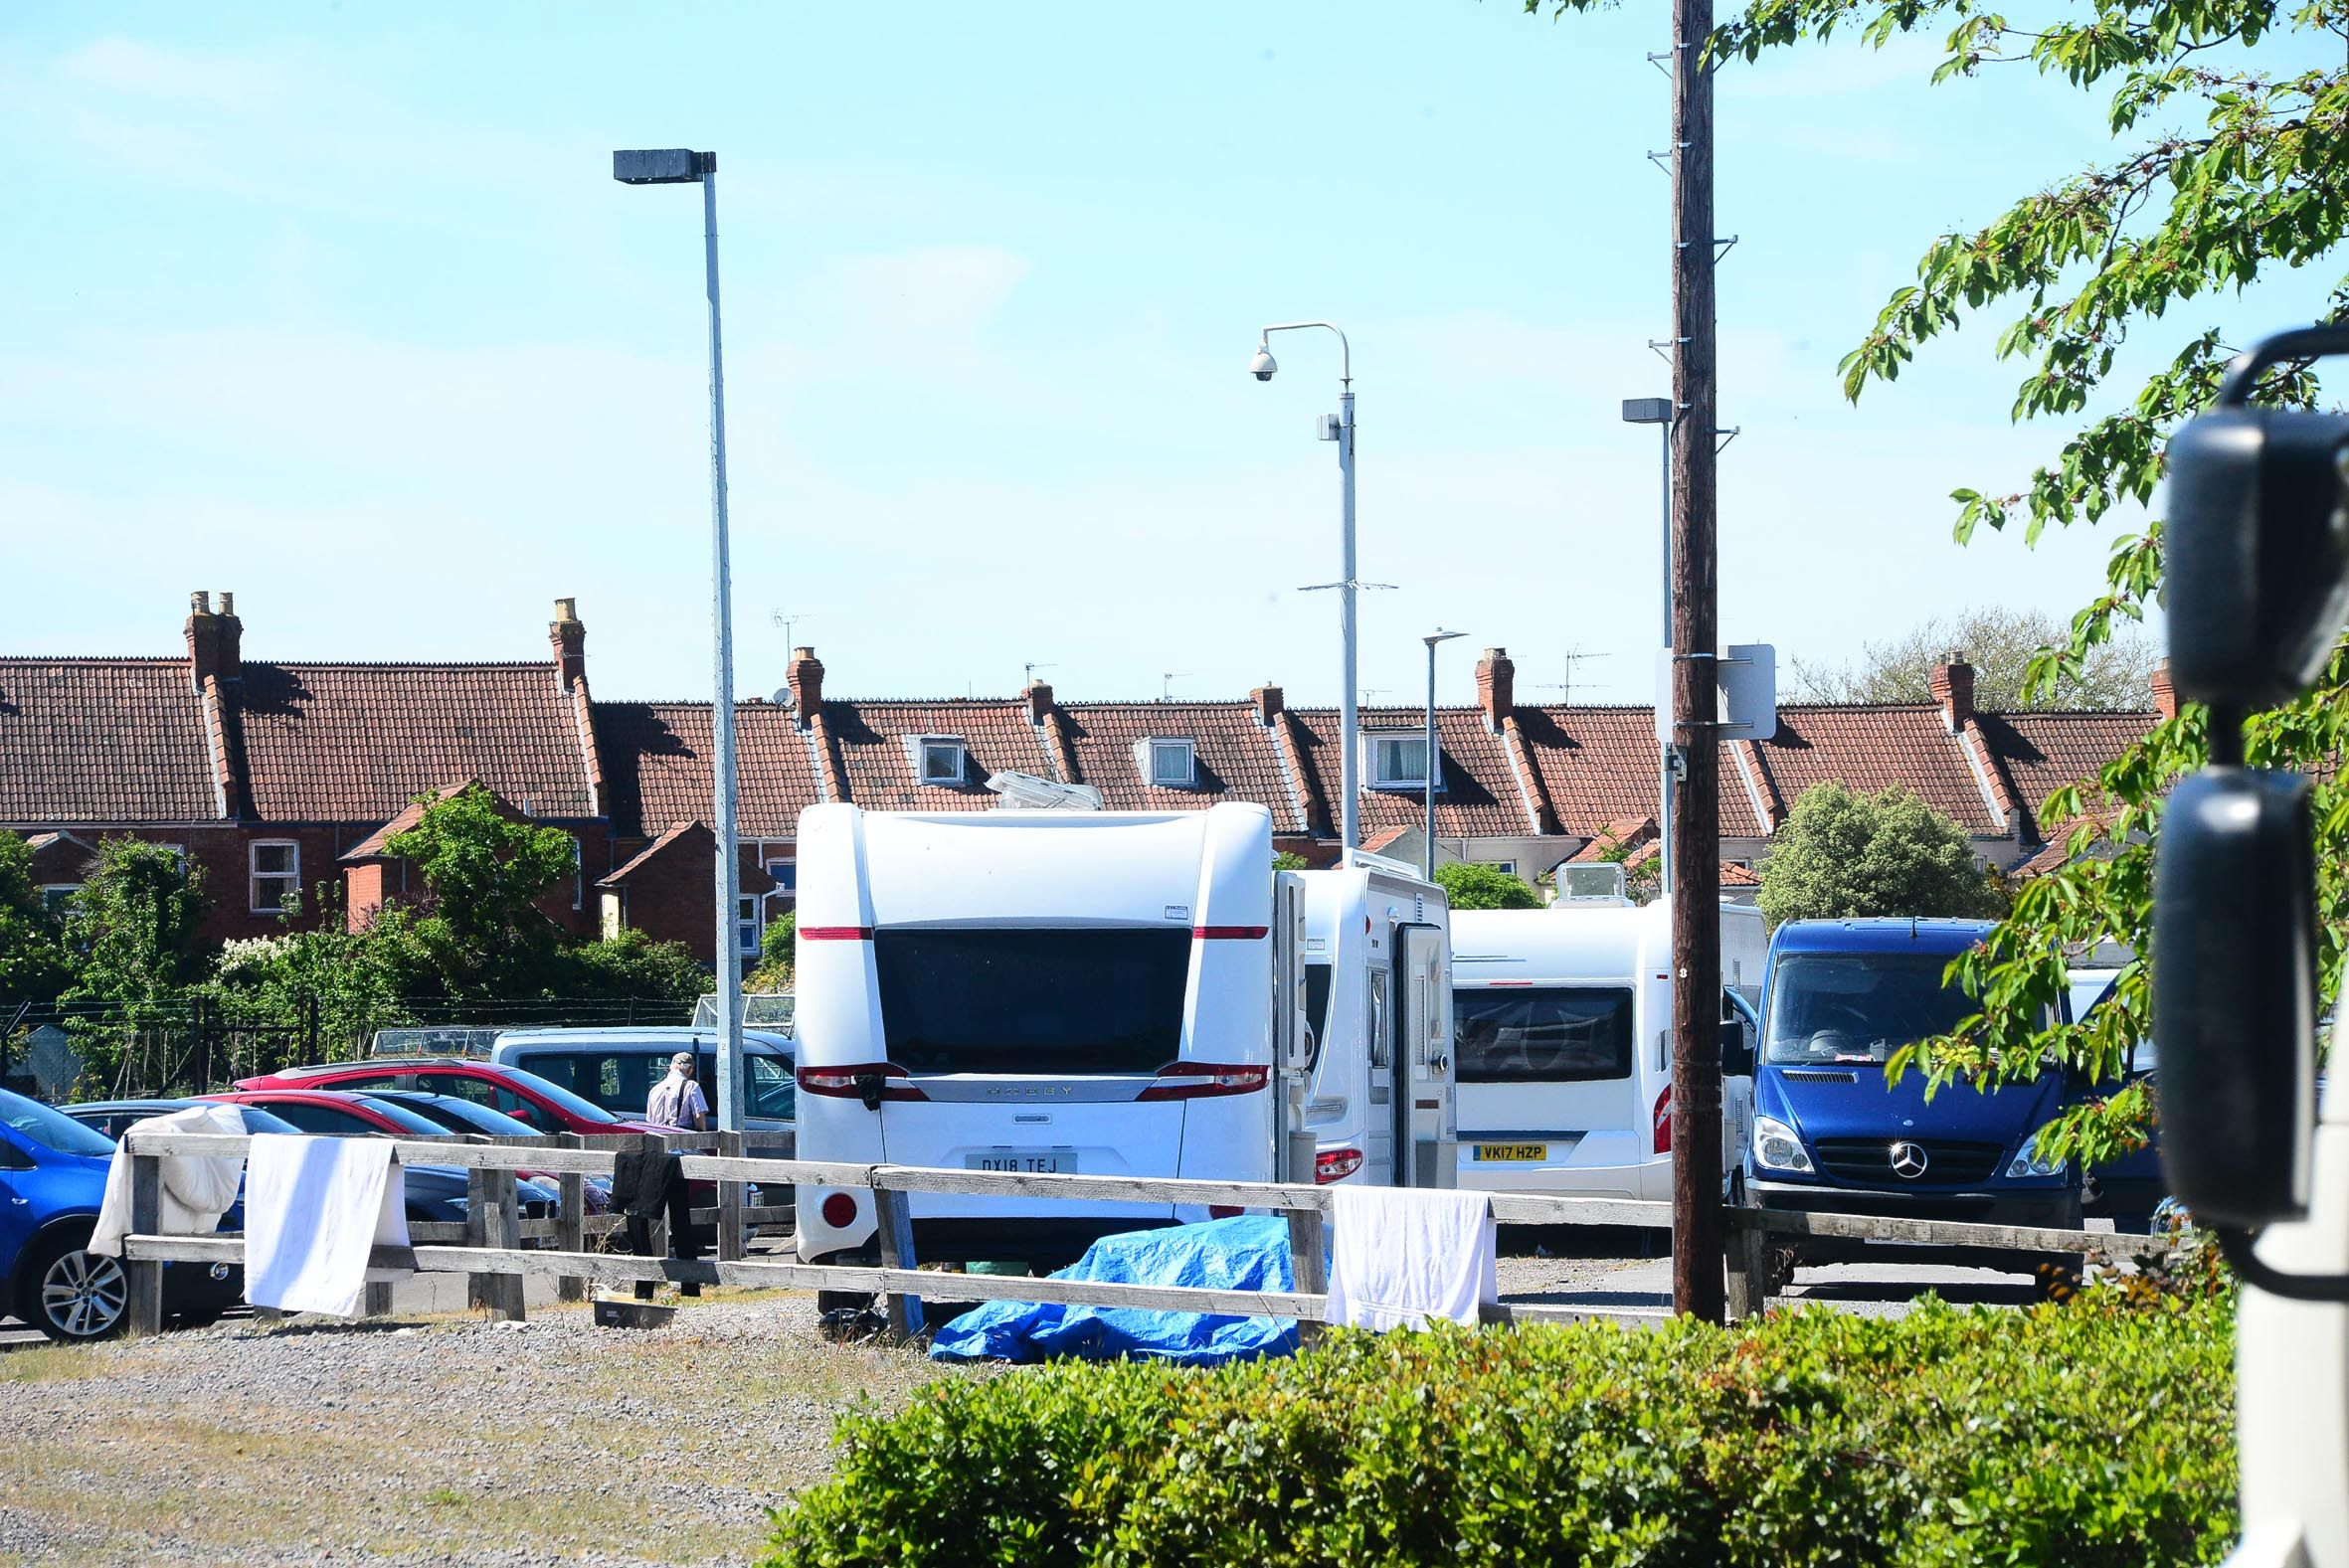 TRAVELLERS: Twelve caravans appeared on the site over the weekend